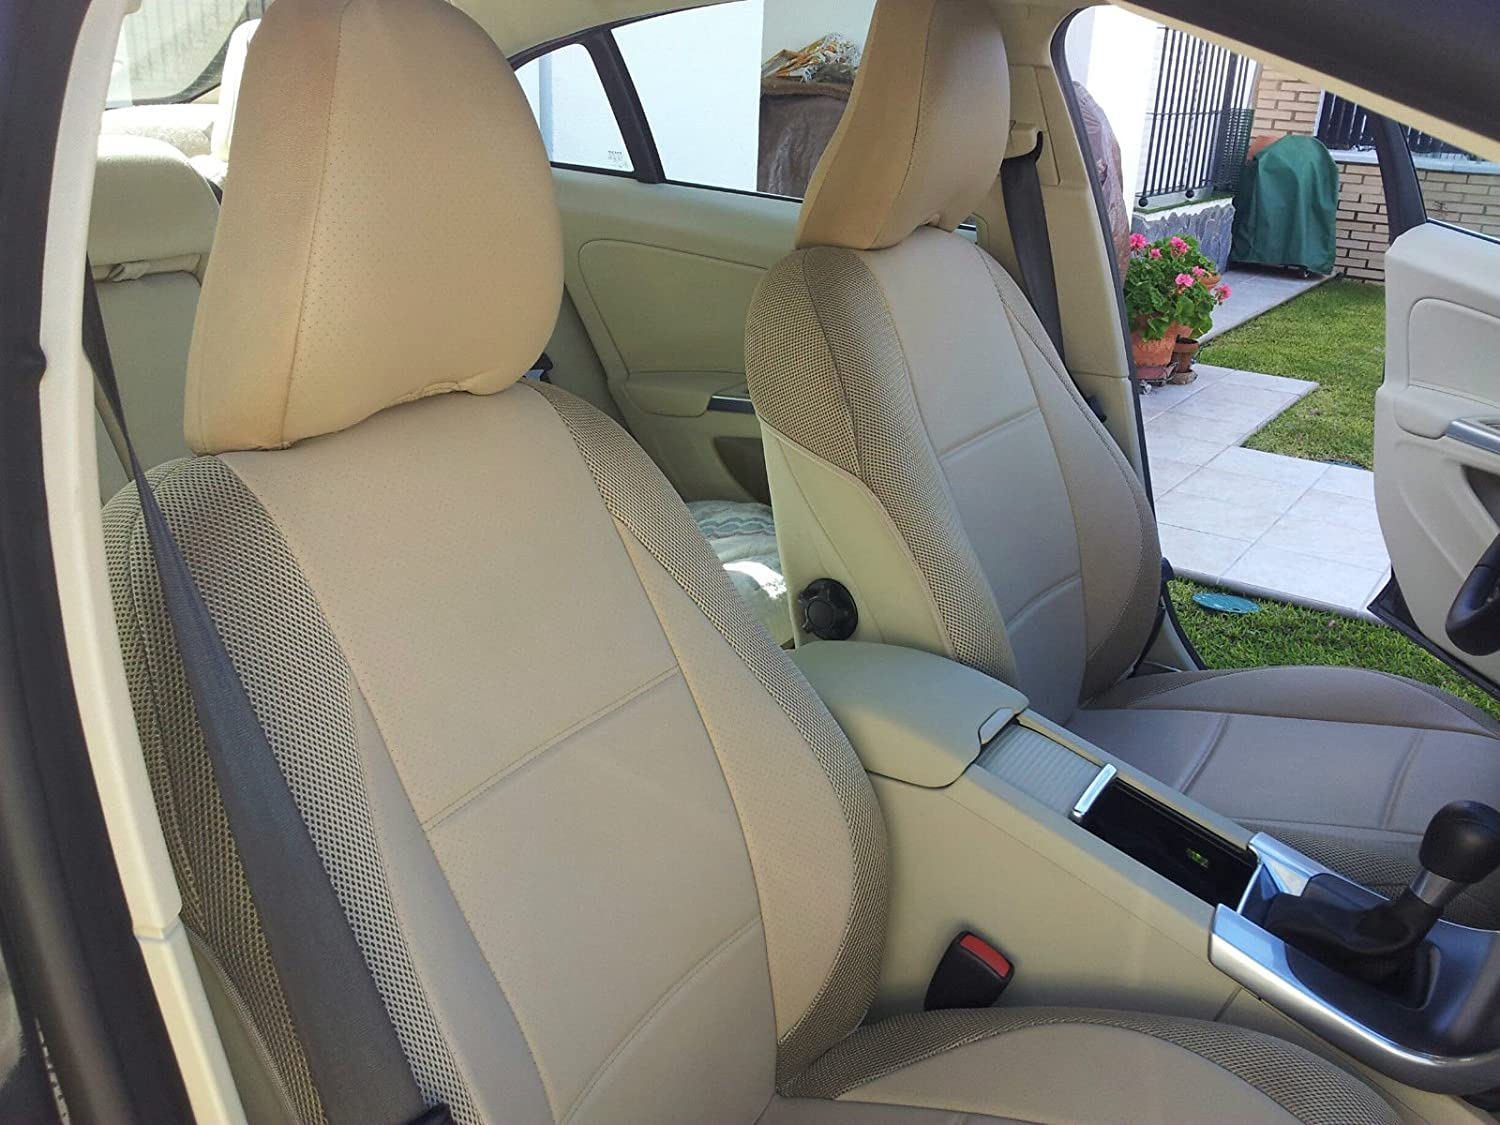 Two Front Car Seat Covers | Leatherette and Synthetic | Custom Fit, Compatible with Volvo C70 2006-2013 | Colour TAN - Beige